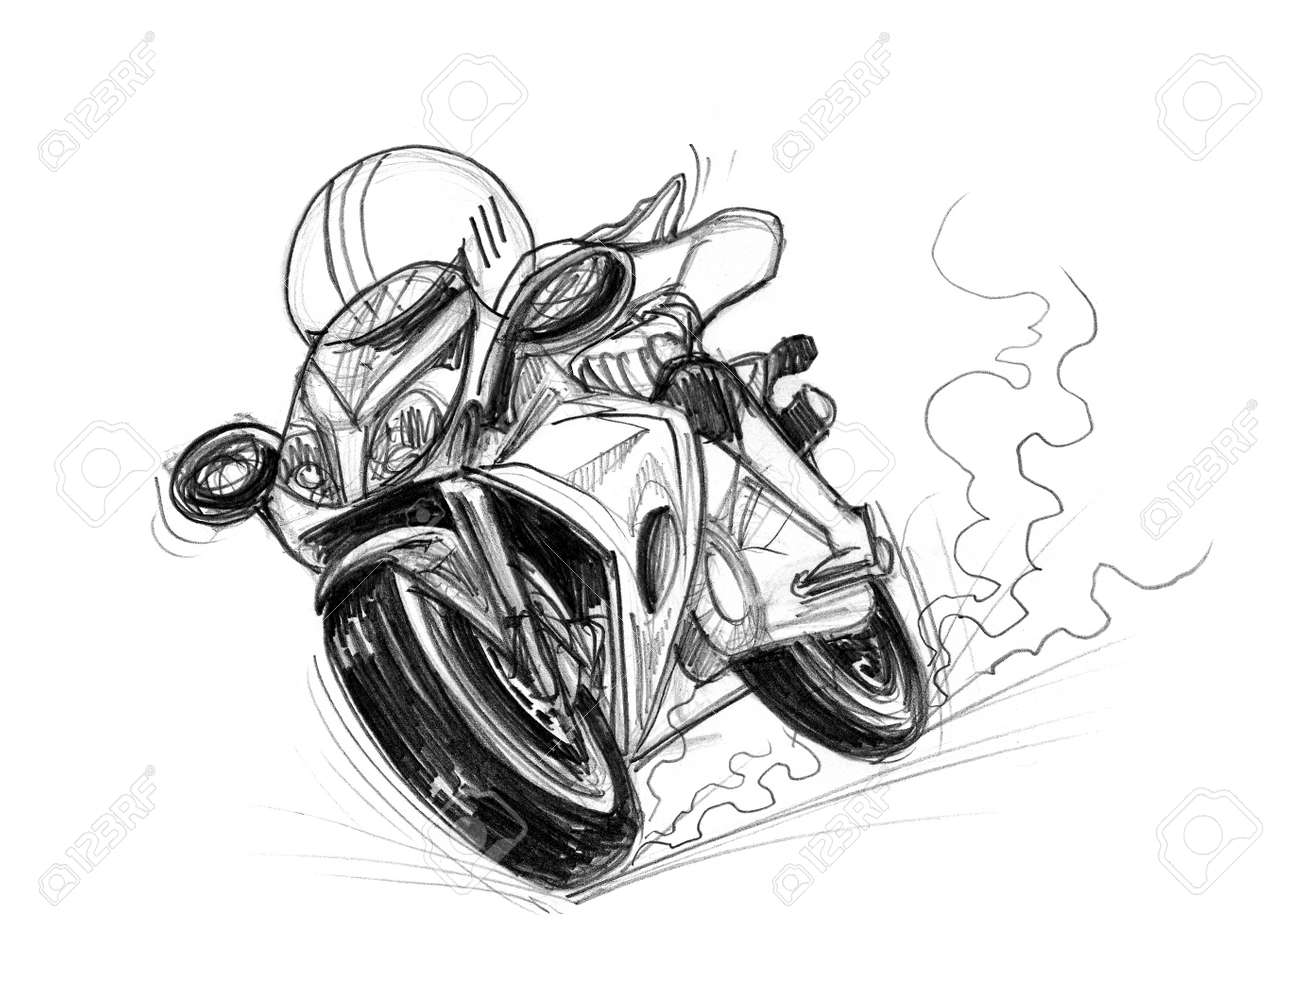 Bike speedy cartoon pencil sketch free hand black and white color isolated background stock photo